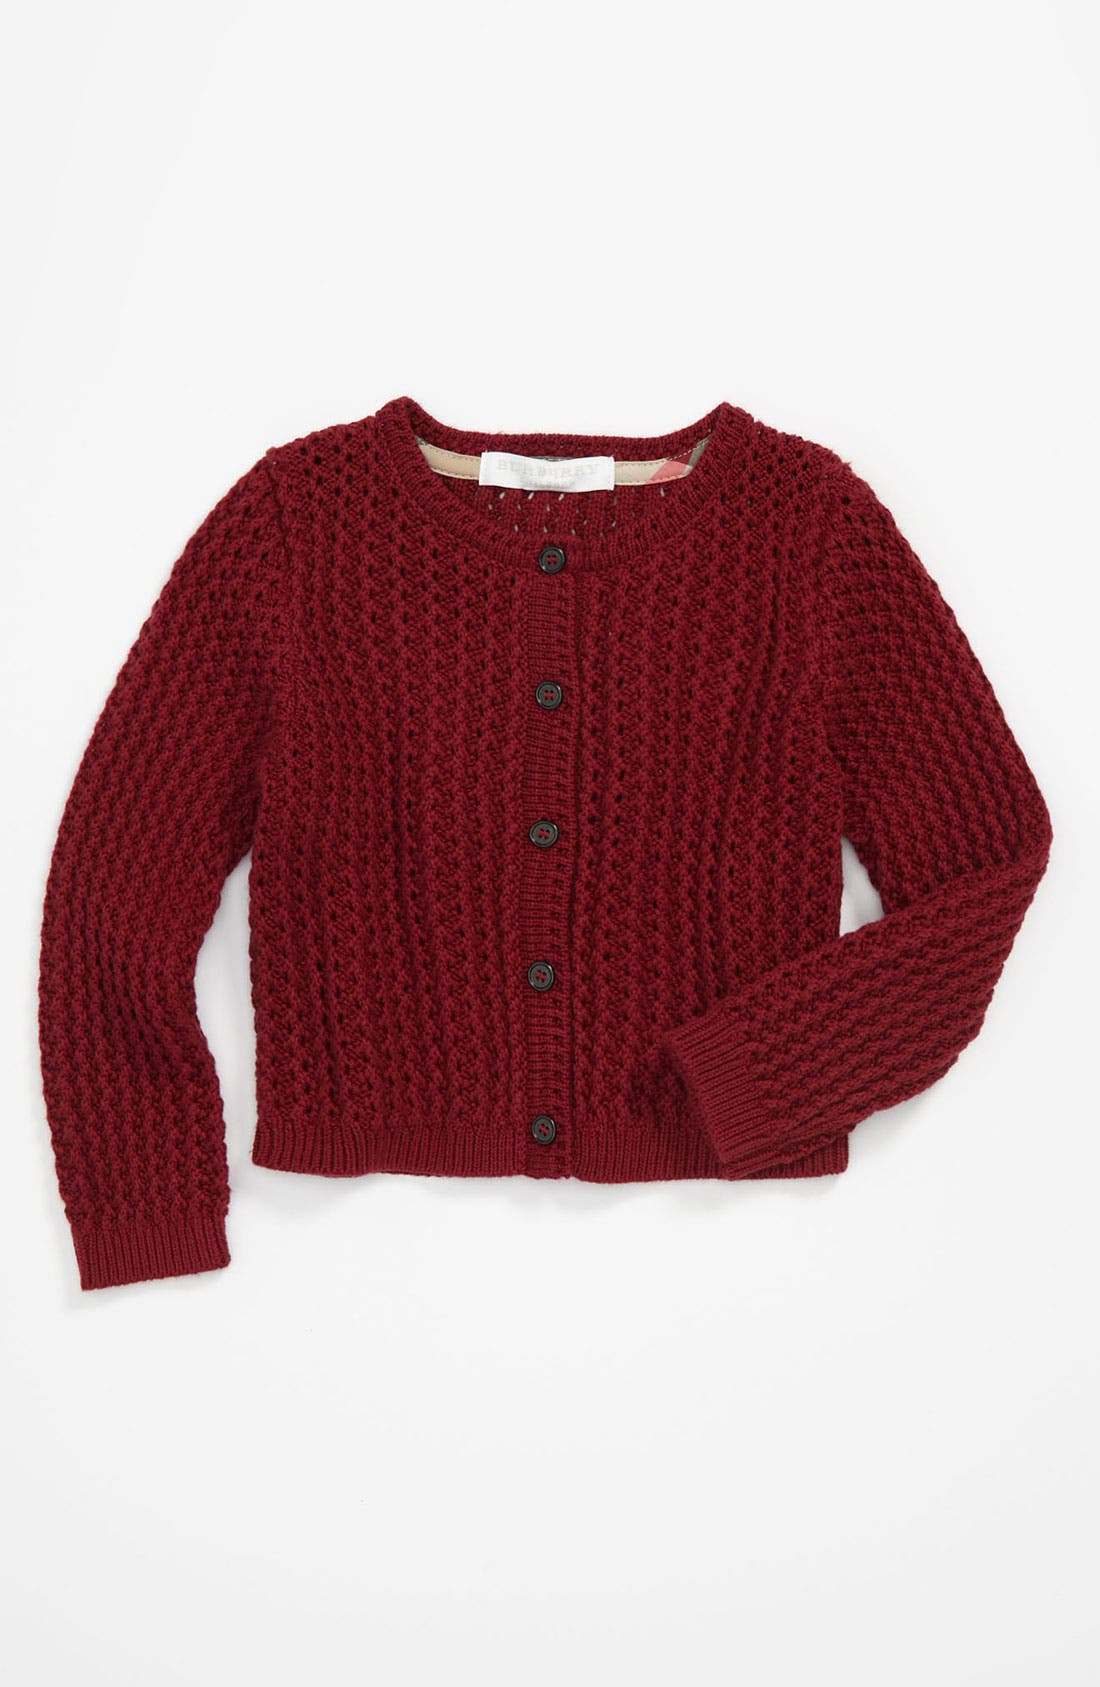 Main Image - Burberry 'Mini Tobalt' Cardigan (Baby)